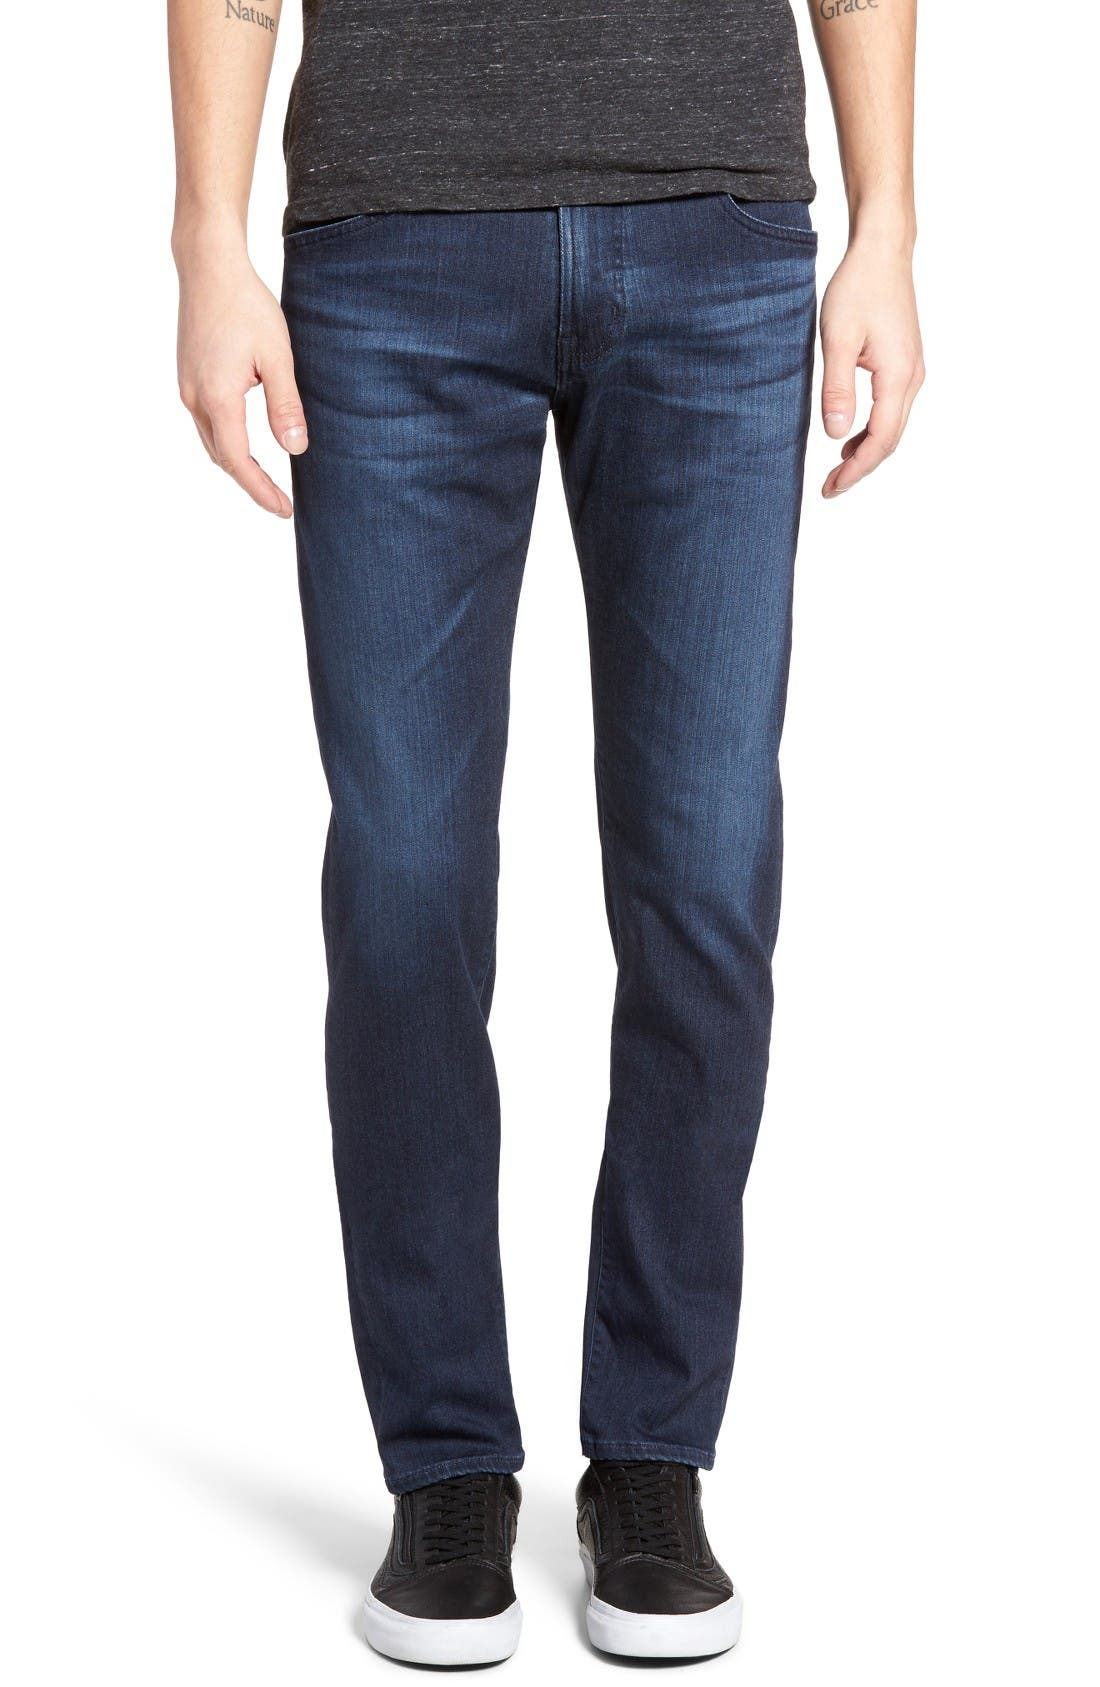 Tellis Slim Fit Jeans,                         Main,                         color, Kast